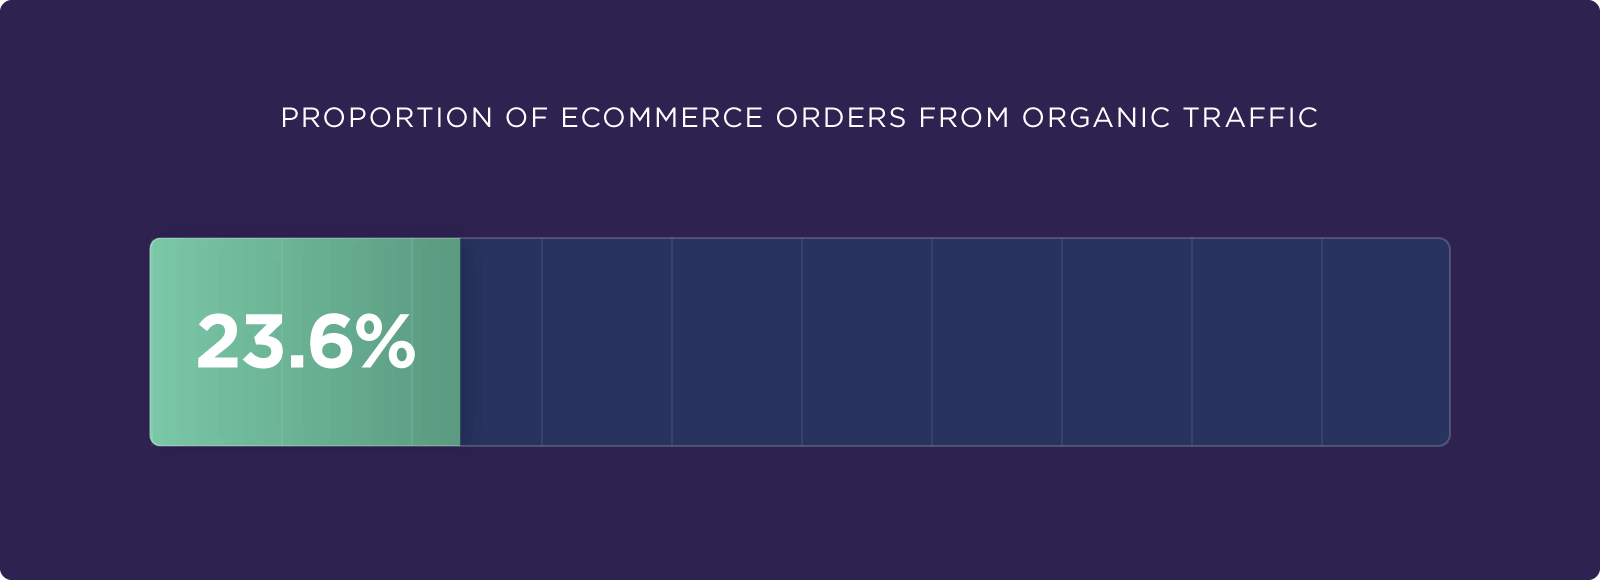 Proportion of ecommerce orders from organic traffic